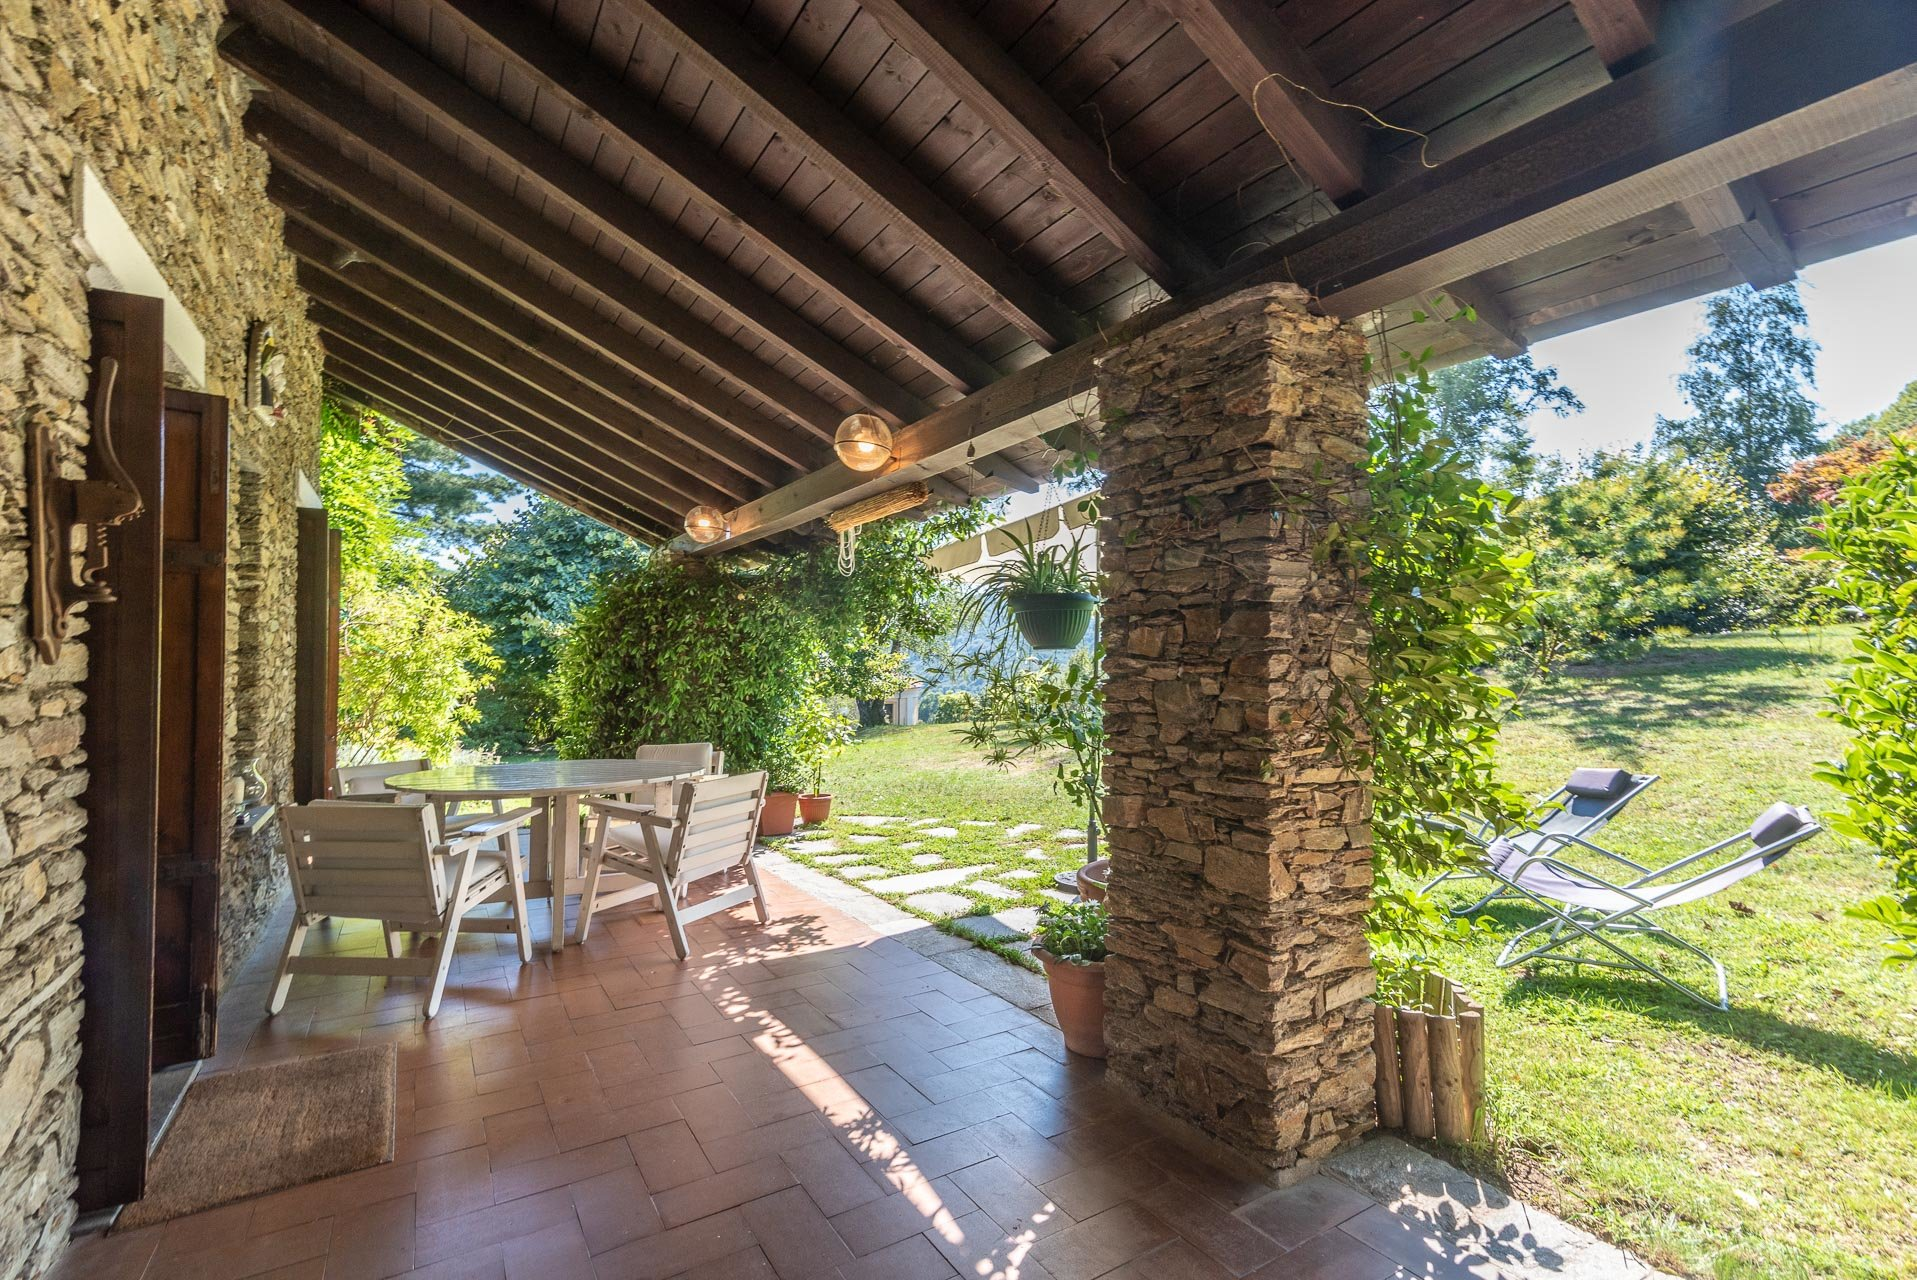 Villa with swimming pool for sale in Gignese - covered patio